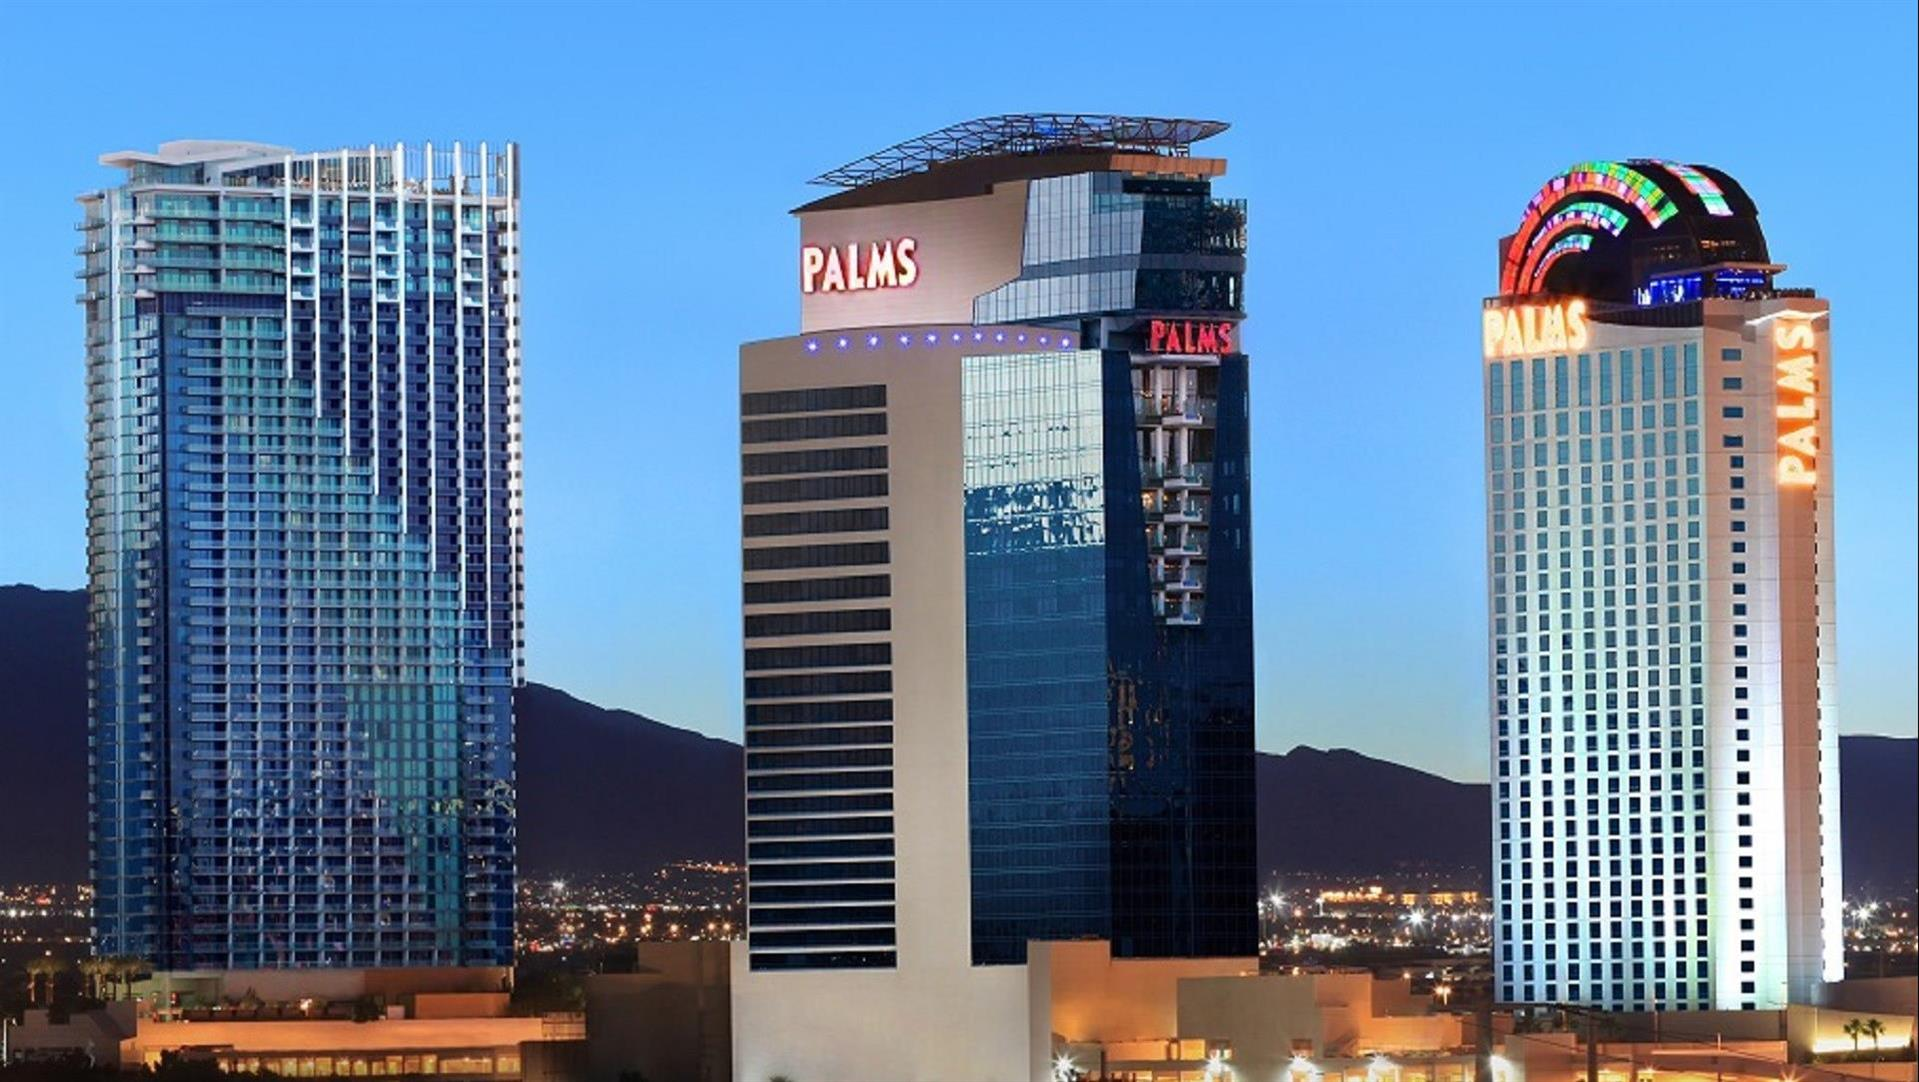 Palms Casino Promotions